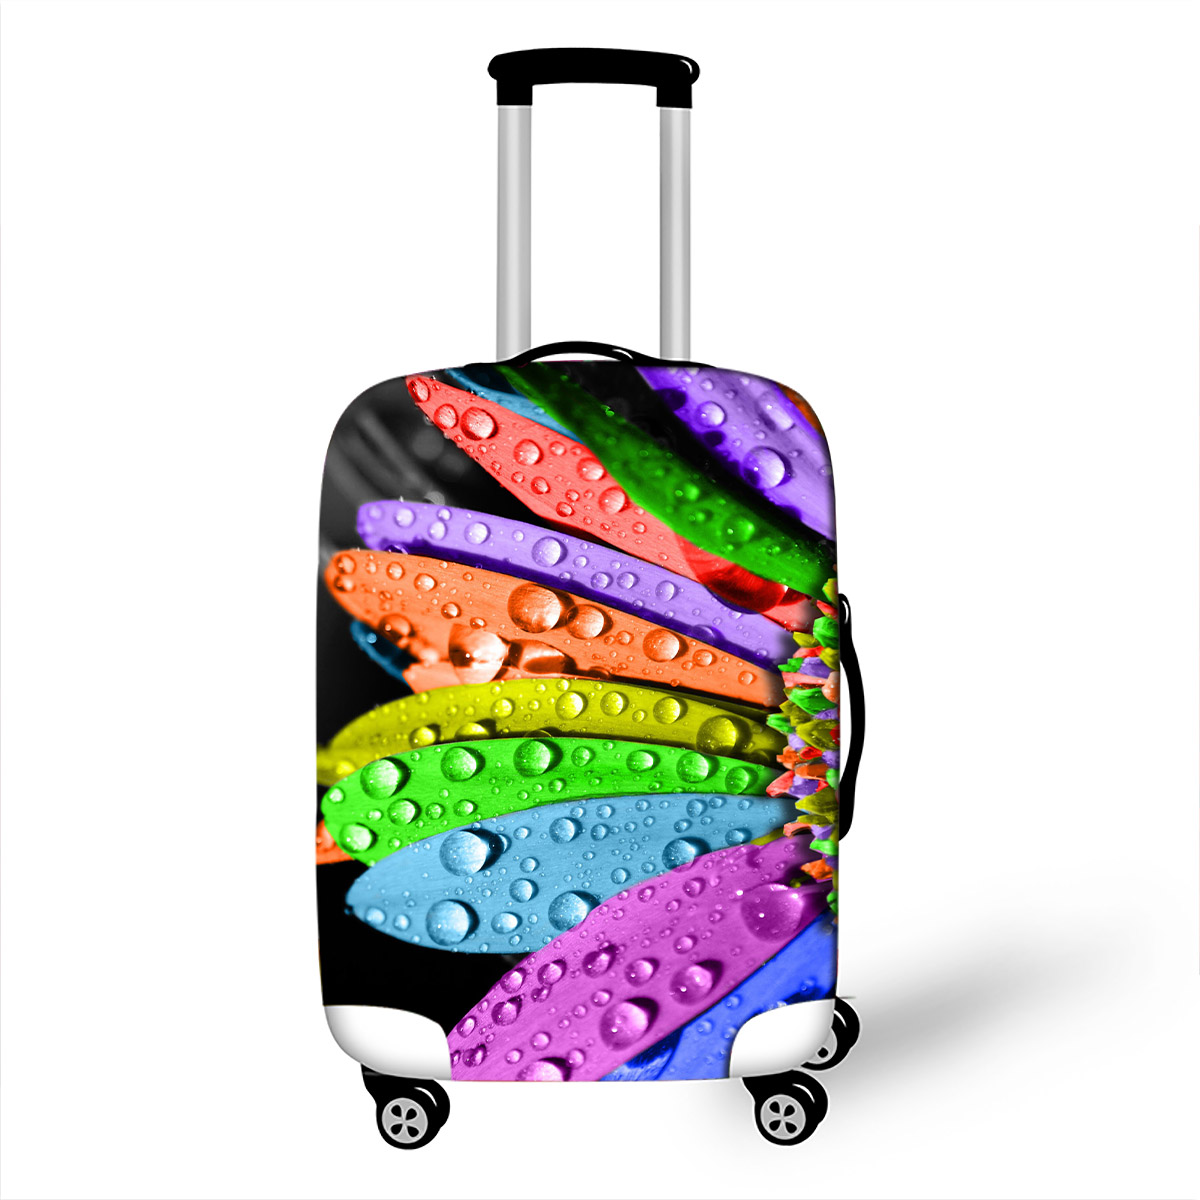 3D Flower Travel Luggage Protective Cover Suitable 18-32 Inch Womens Trolley Suitcase Elastic Trunk Case Dust Covers3D Flower Travel Luggage Protective Cover Suitable 18-32 Inch Womens Trolley Suitcase Elastic Trunk Case Dust Covers